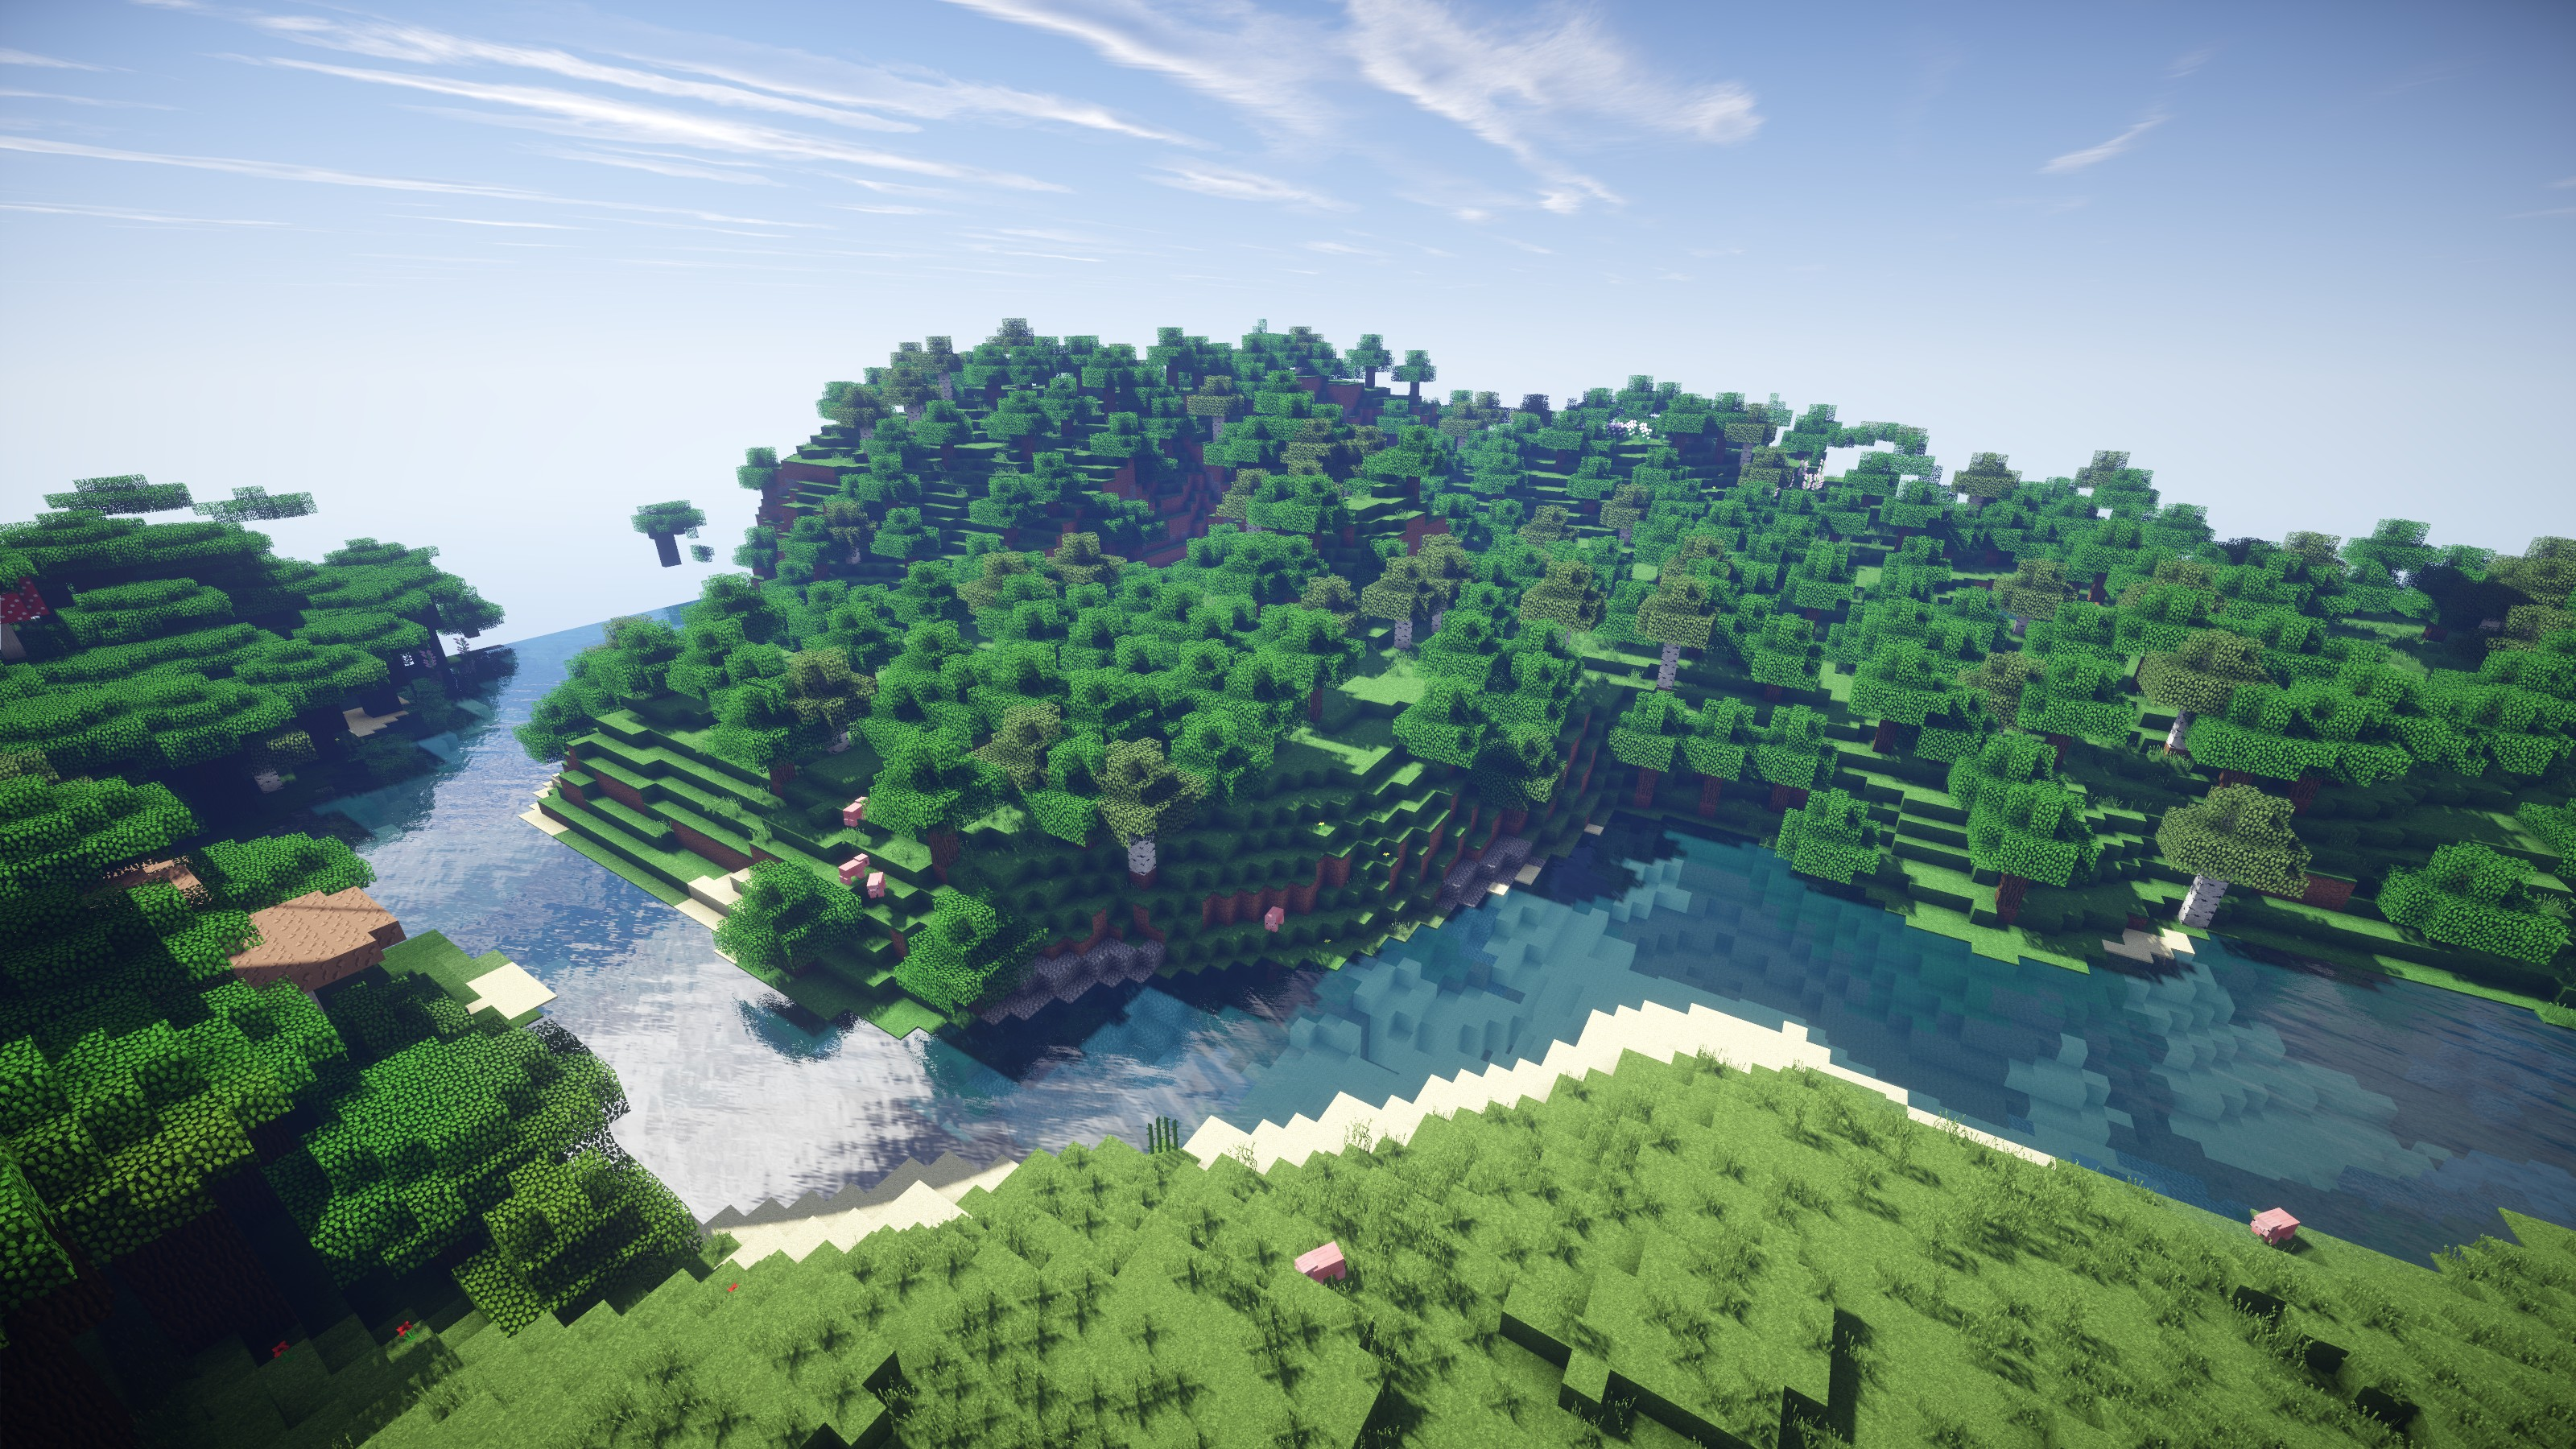 Most Inspiring Wallpaper Minecraft High Definition - 157294-new-minecraft-shaders-background-3200x1800-for-ipad-pro  Pictures_603088.jpg